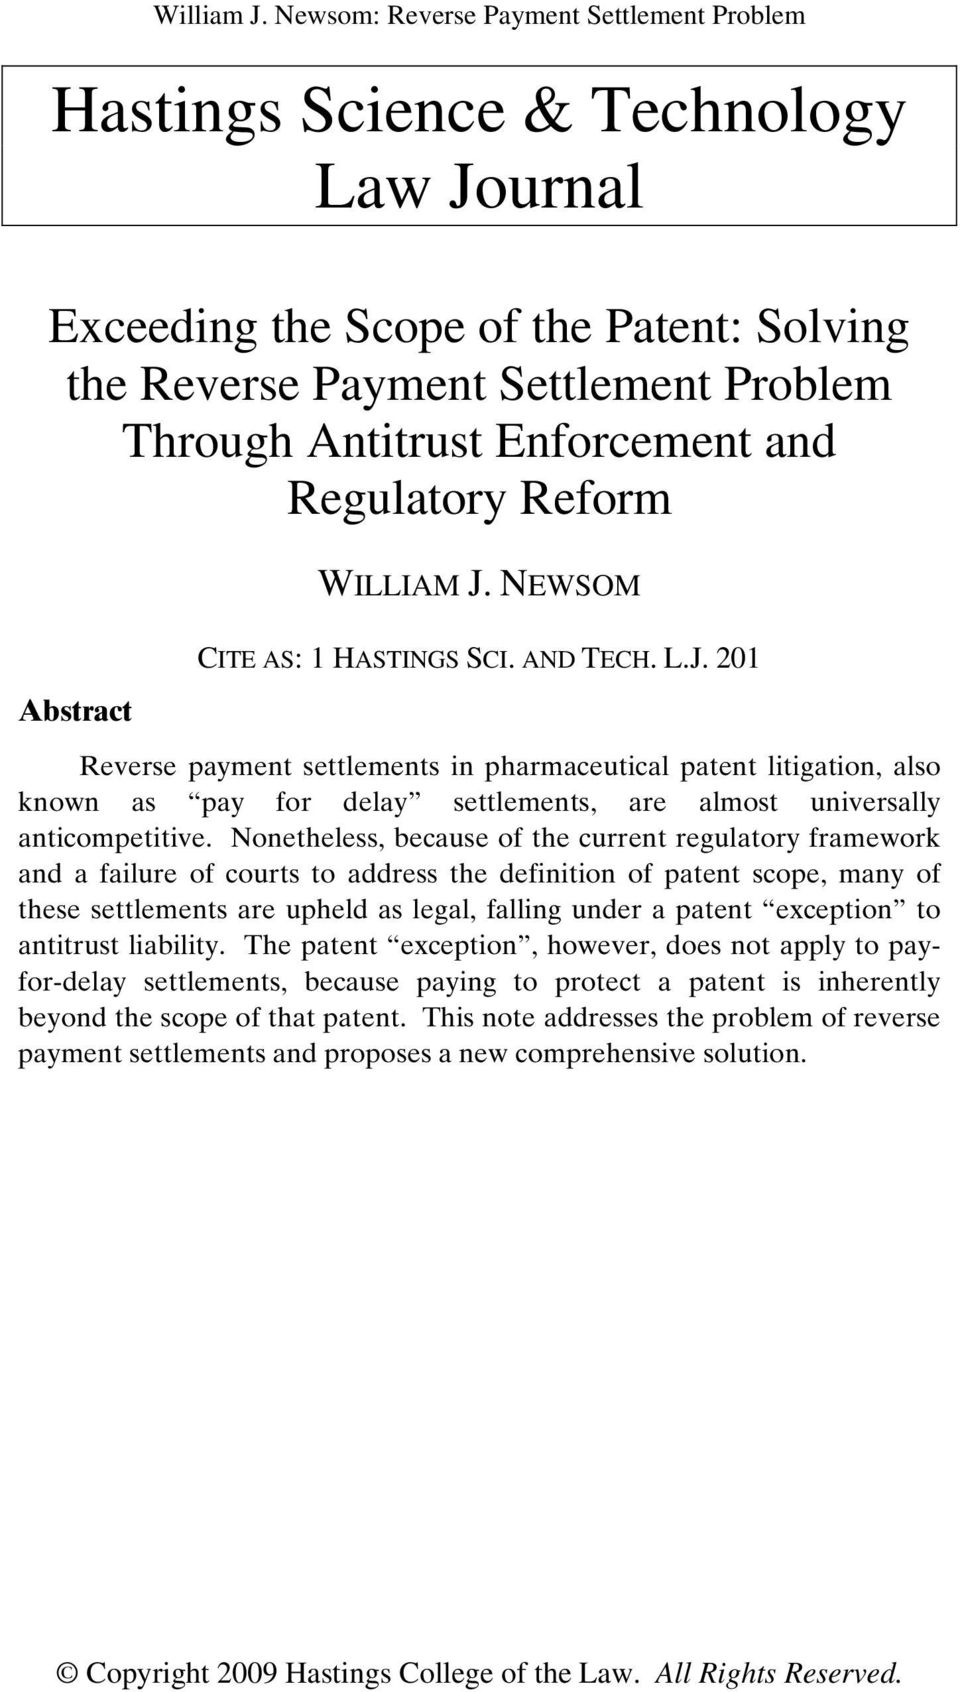 and Regulatory Reform Abstract WILLIAM J. NEWSOM CITE AS: 1 HASTINGS SCI. AND TECH. L.J. 201 Reverse payment settlements in pharmaceutical patent litigation, also known as pay for delay settlements, are almost universally anticompetitive.